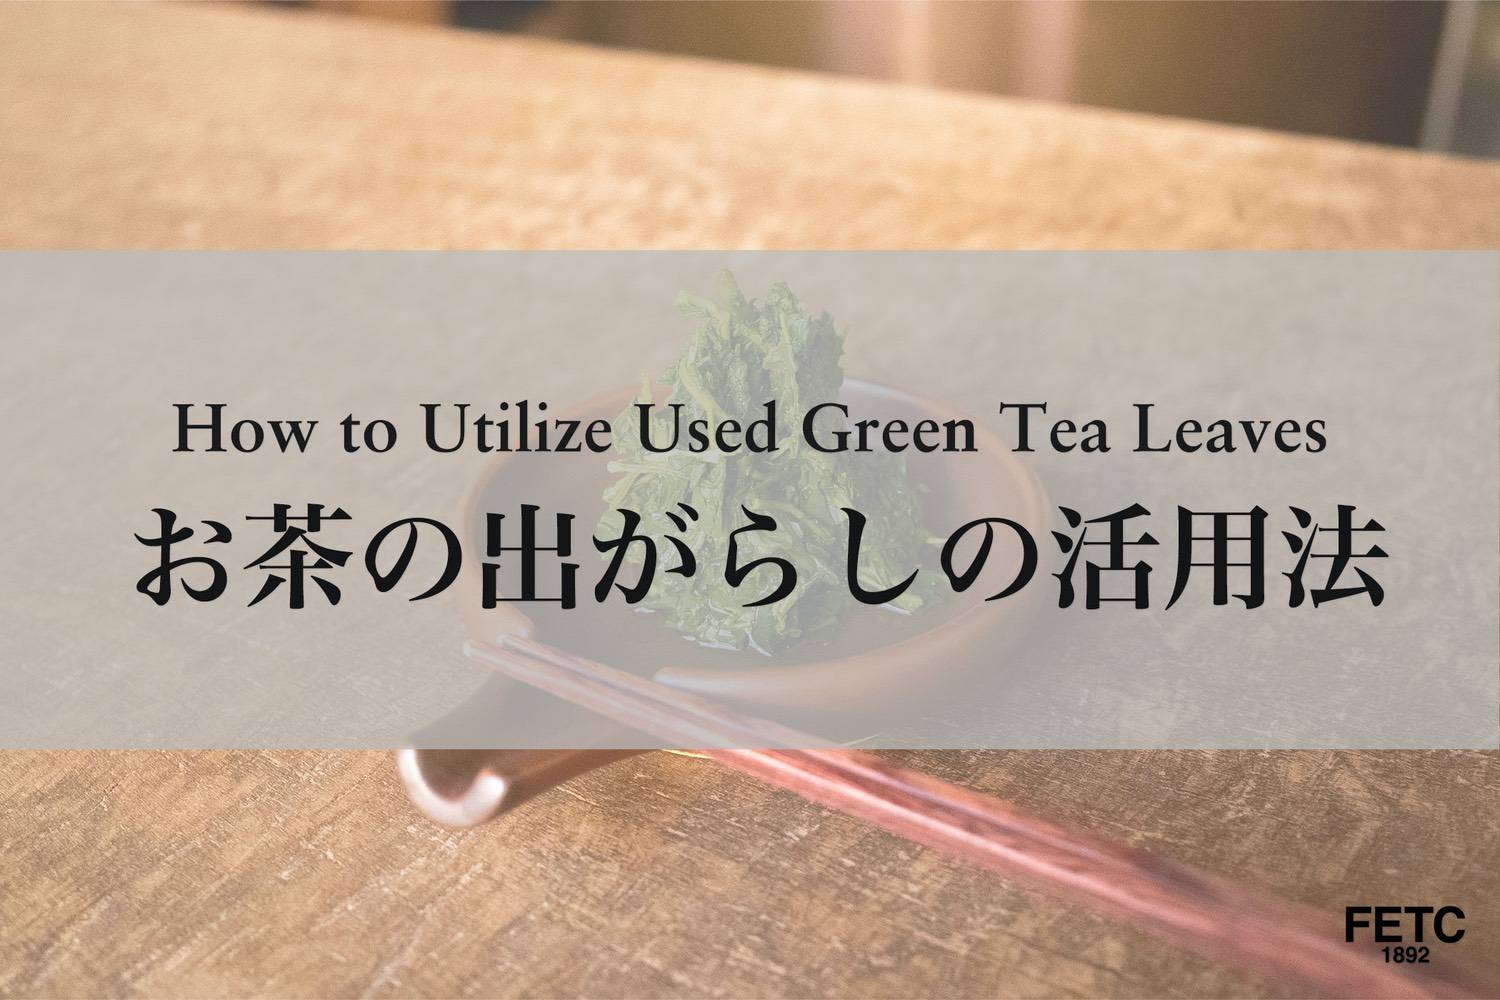 13 Ways to Utilize Used Green Tea Leaves